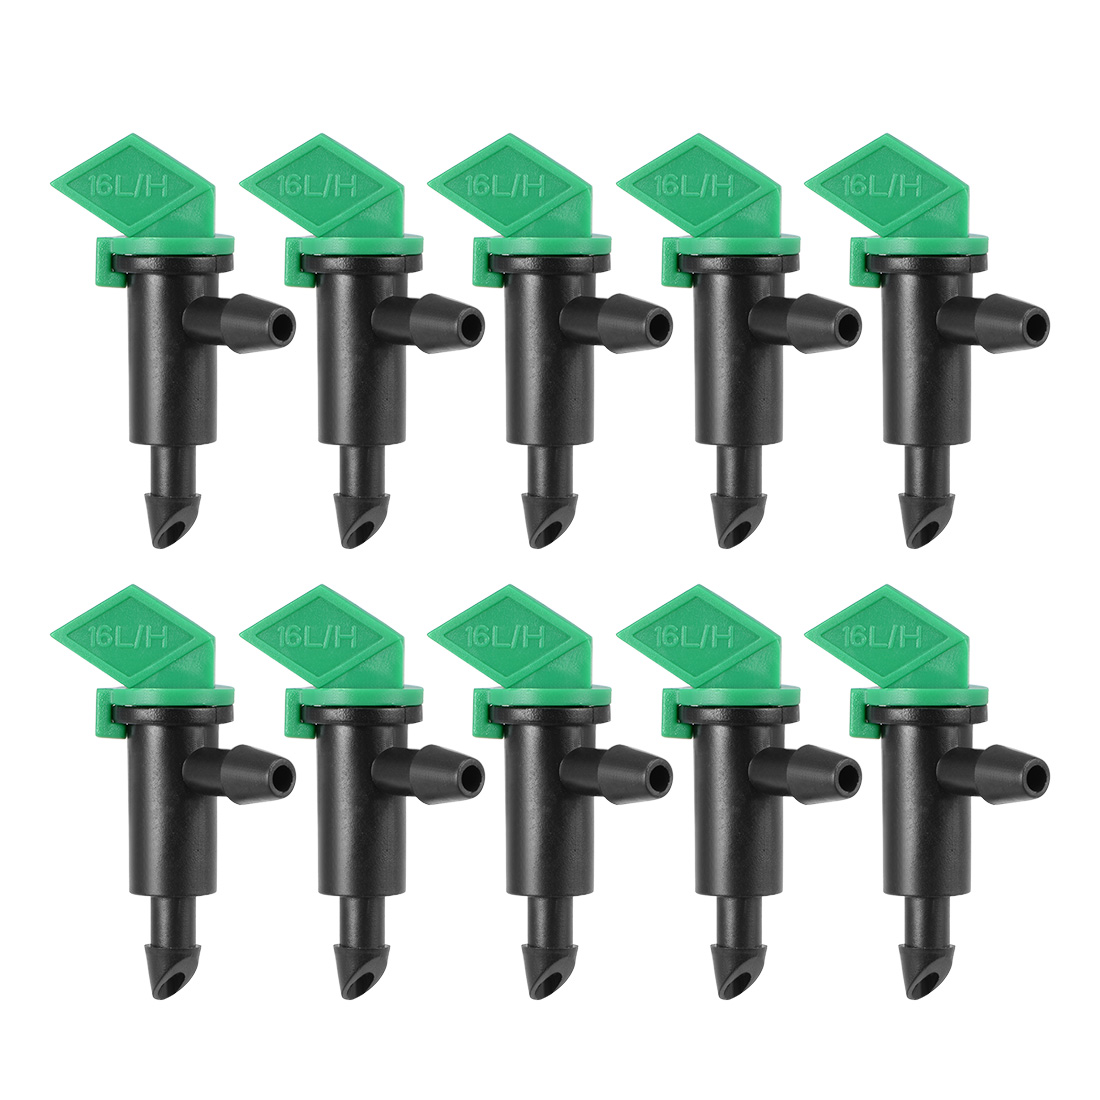 Flag Dripper 4 GPH 16L/H Emitter Sprinkler Lawn Drip Irrigation 4/7mm Hose 10pcs